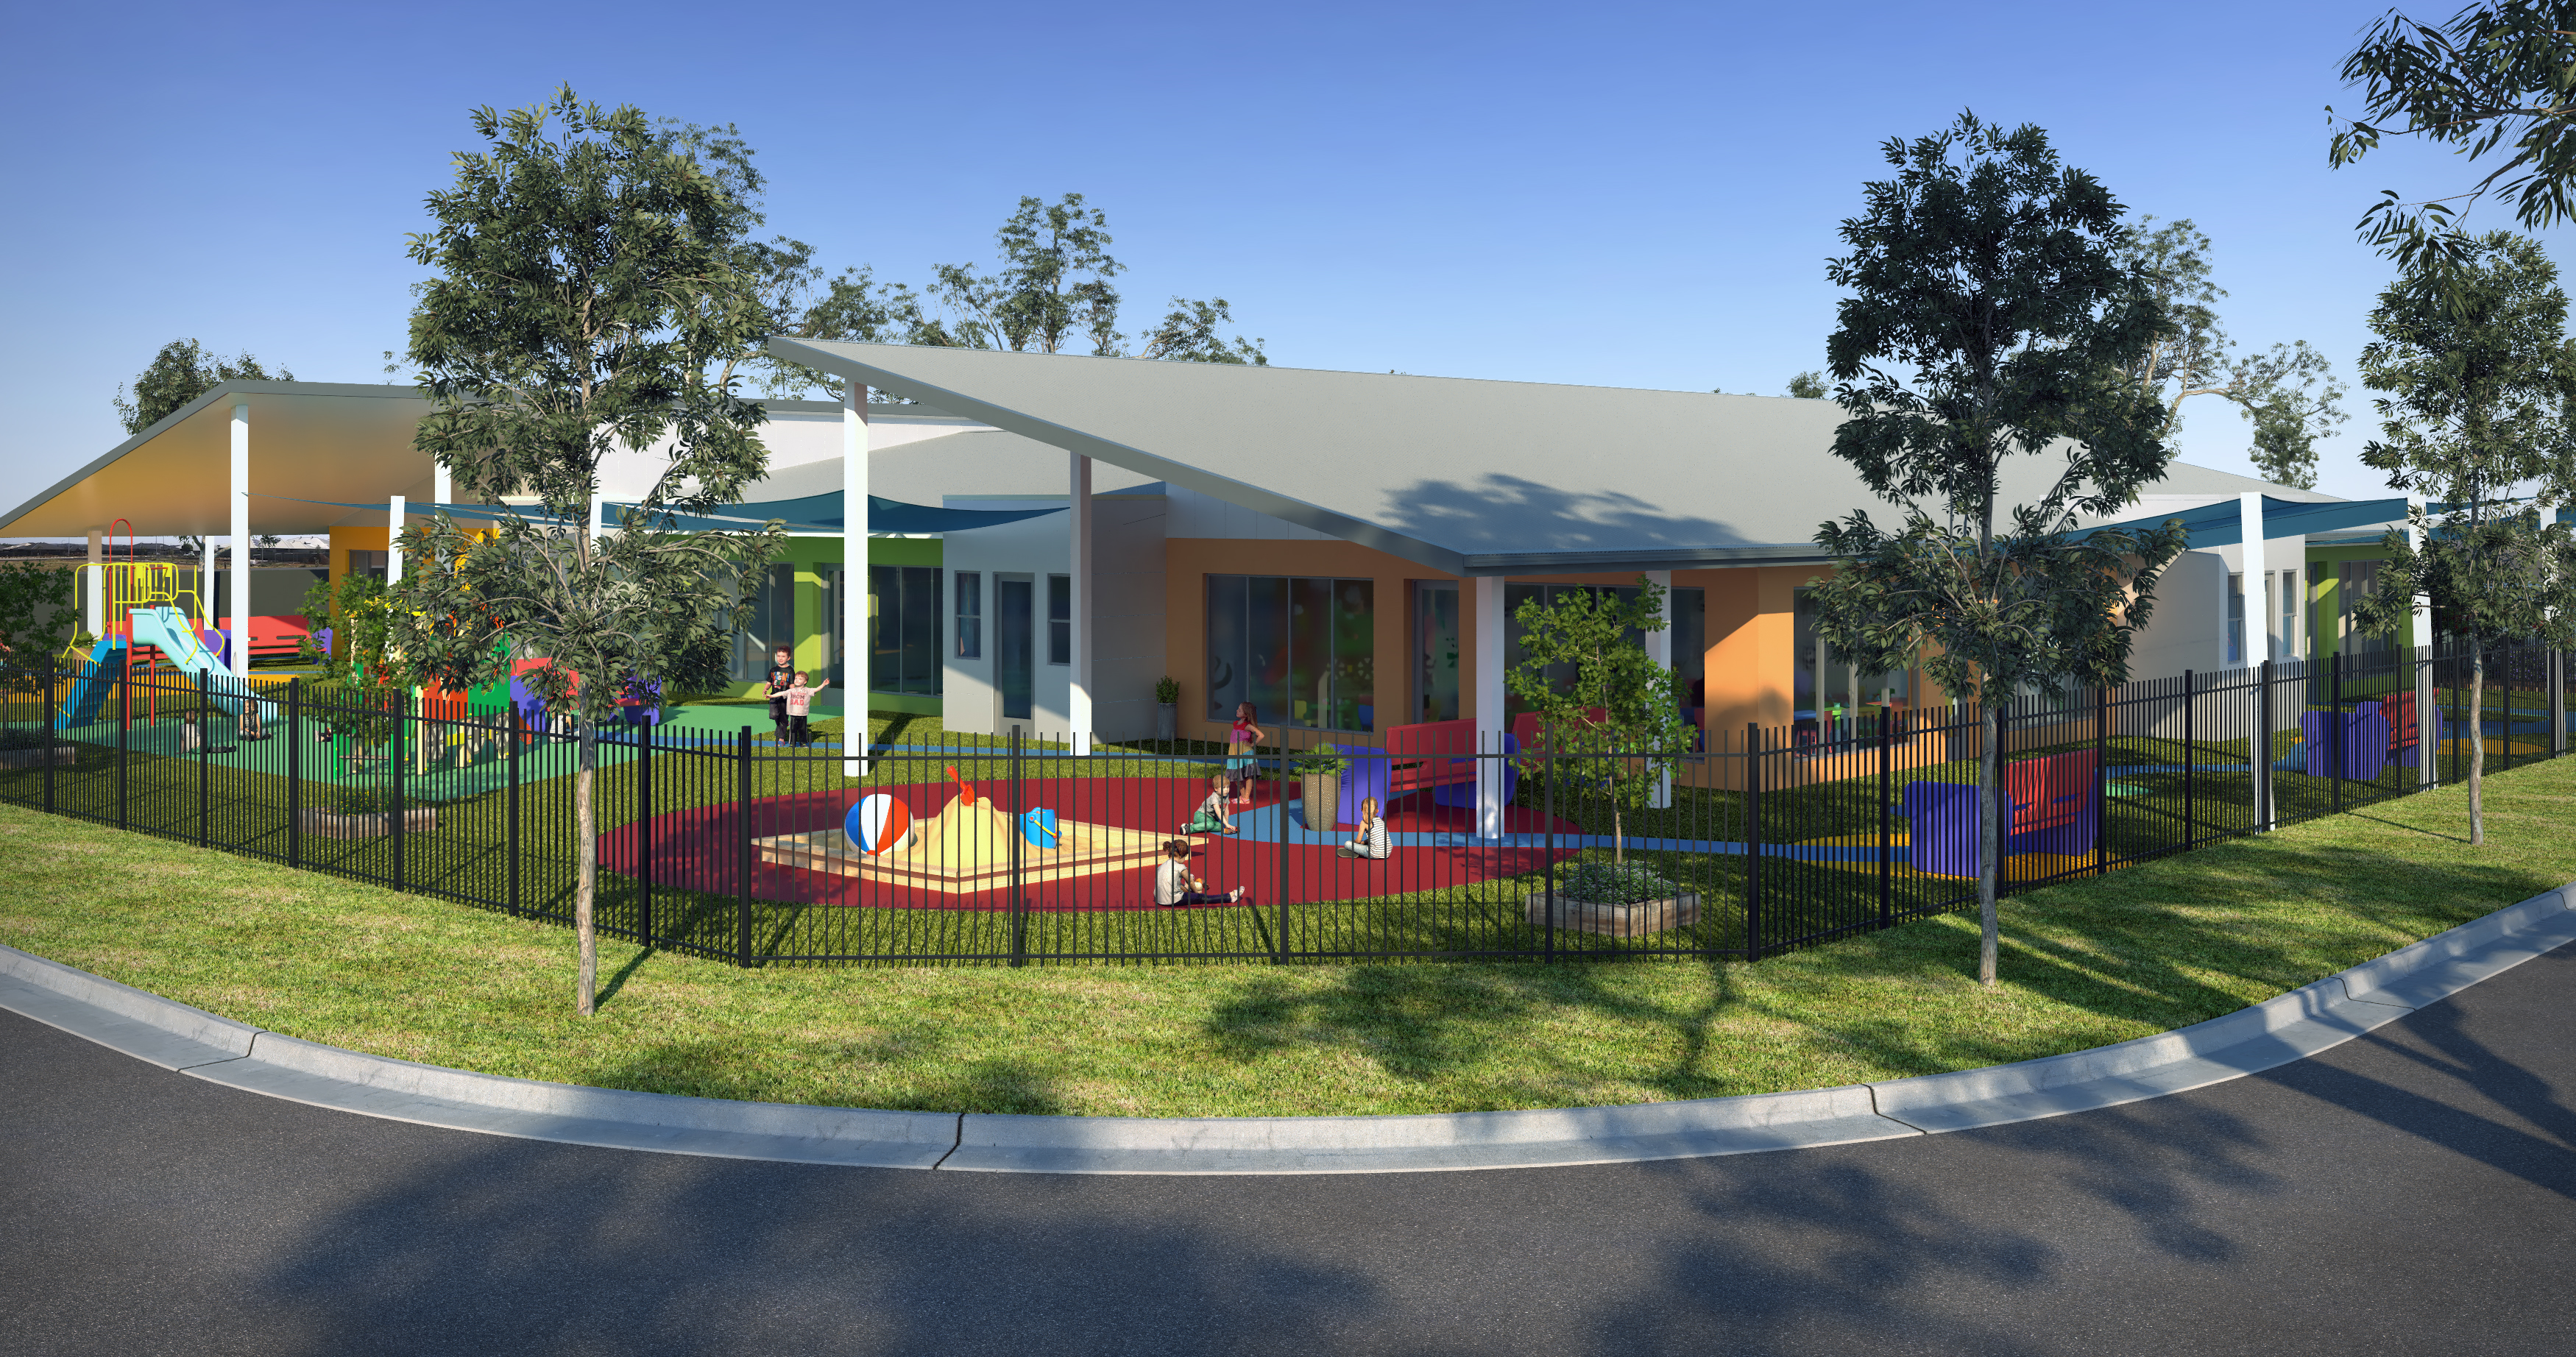 DA Approved Childcare Development in Dubbo's Growth Hub